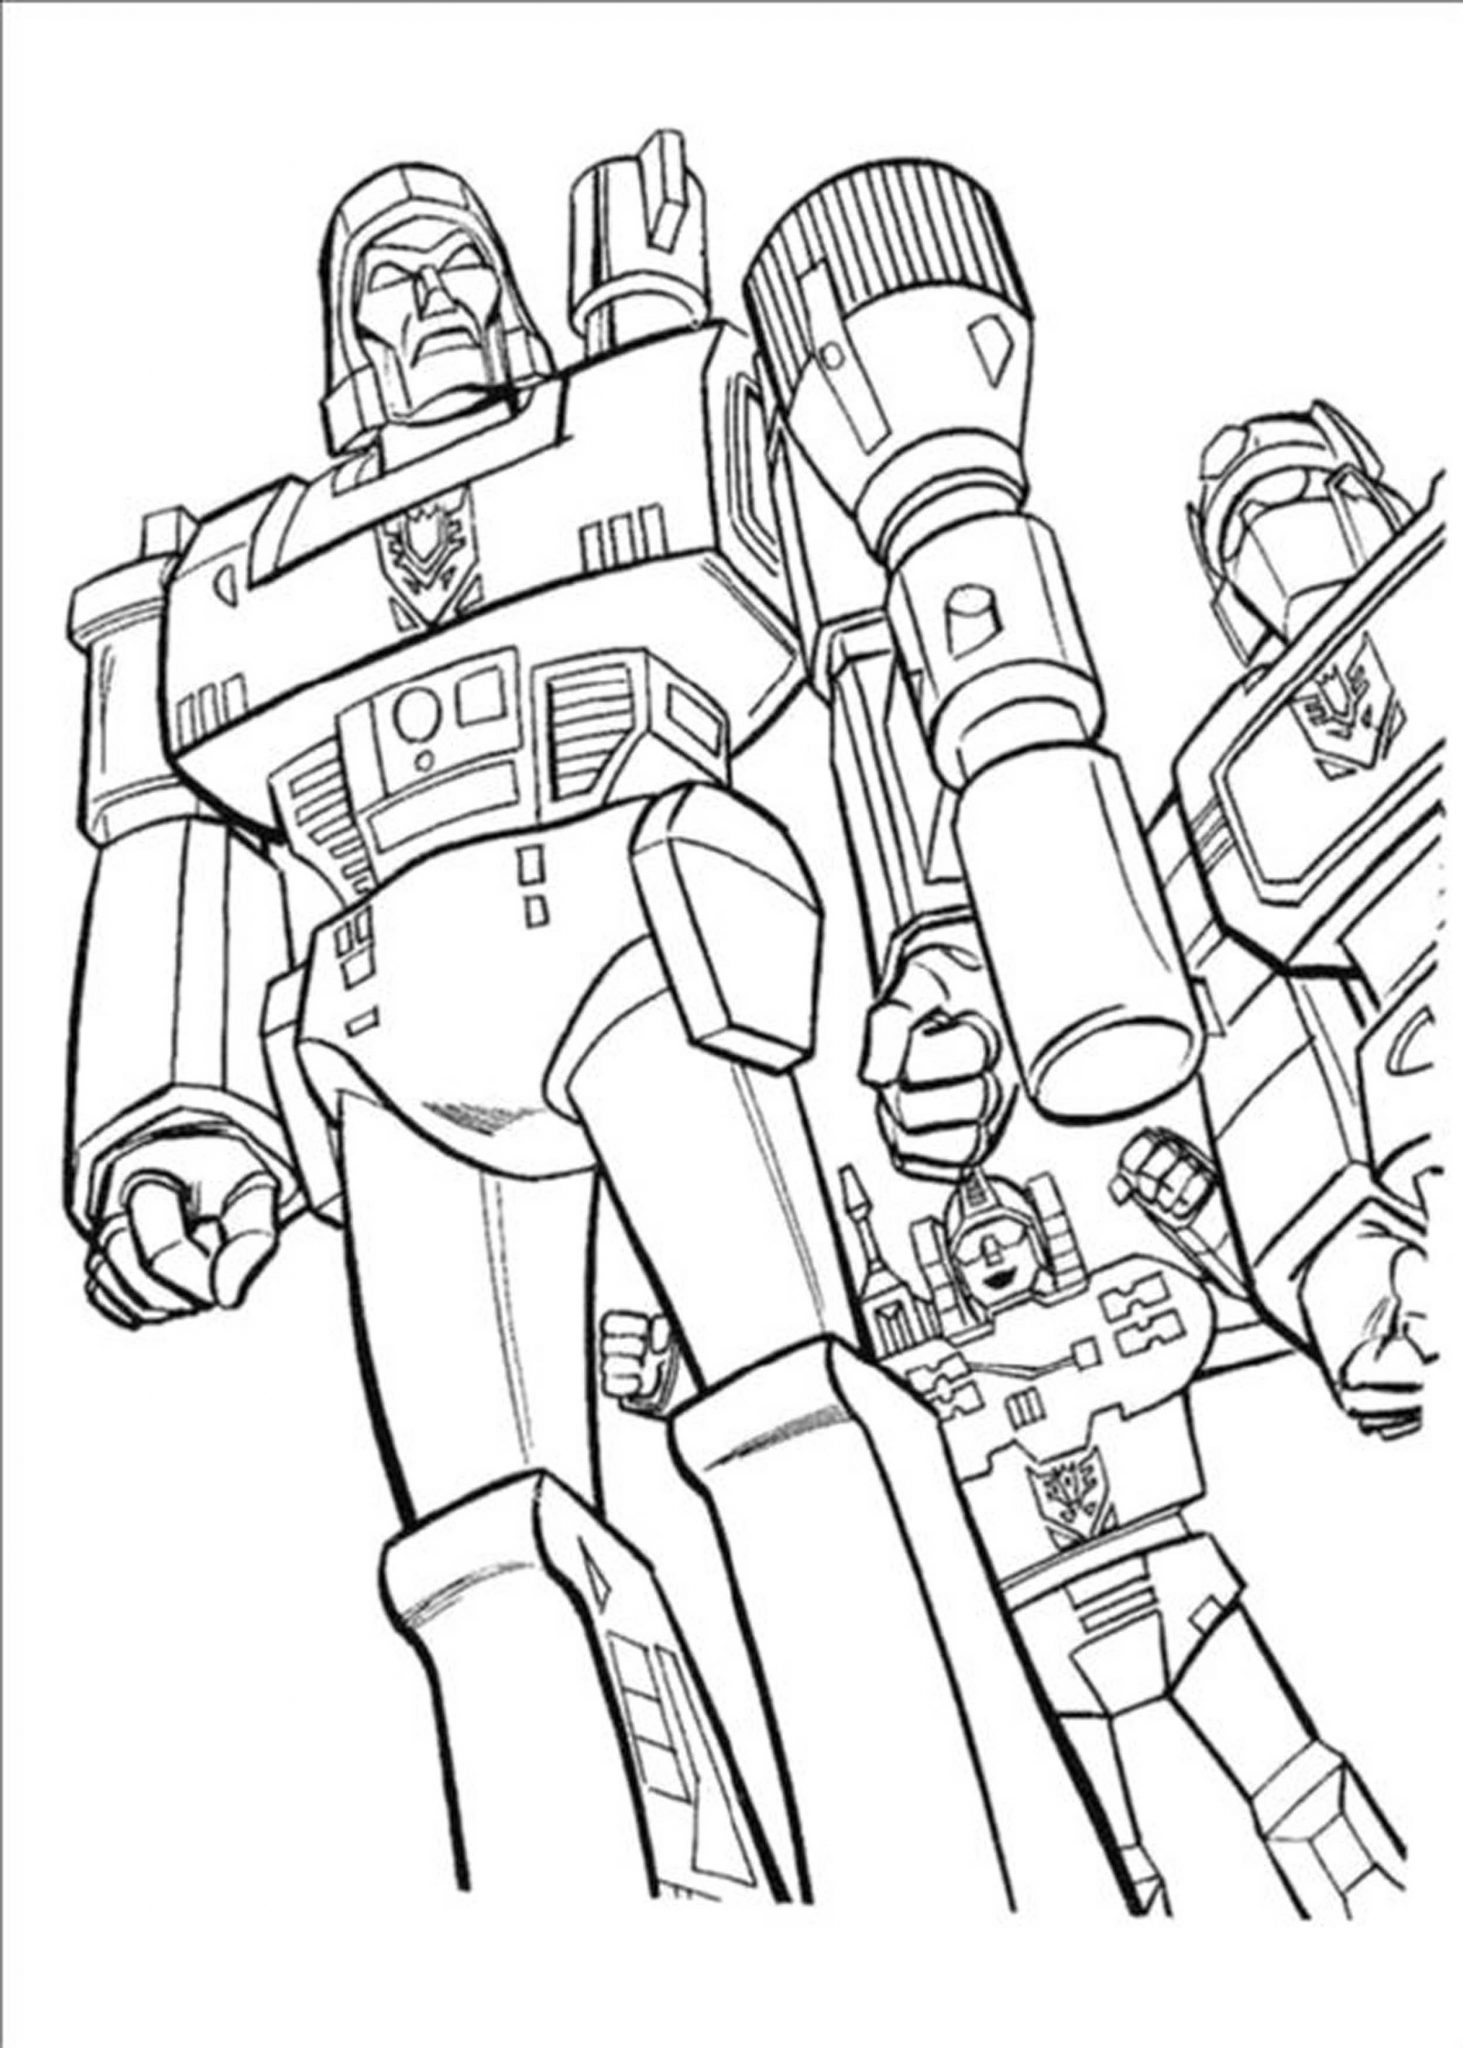 Print & Download - Inviting Kids to Do the Transformers Coloring Pages